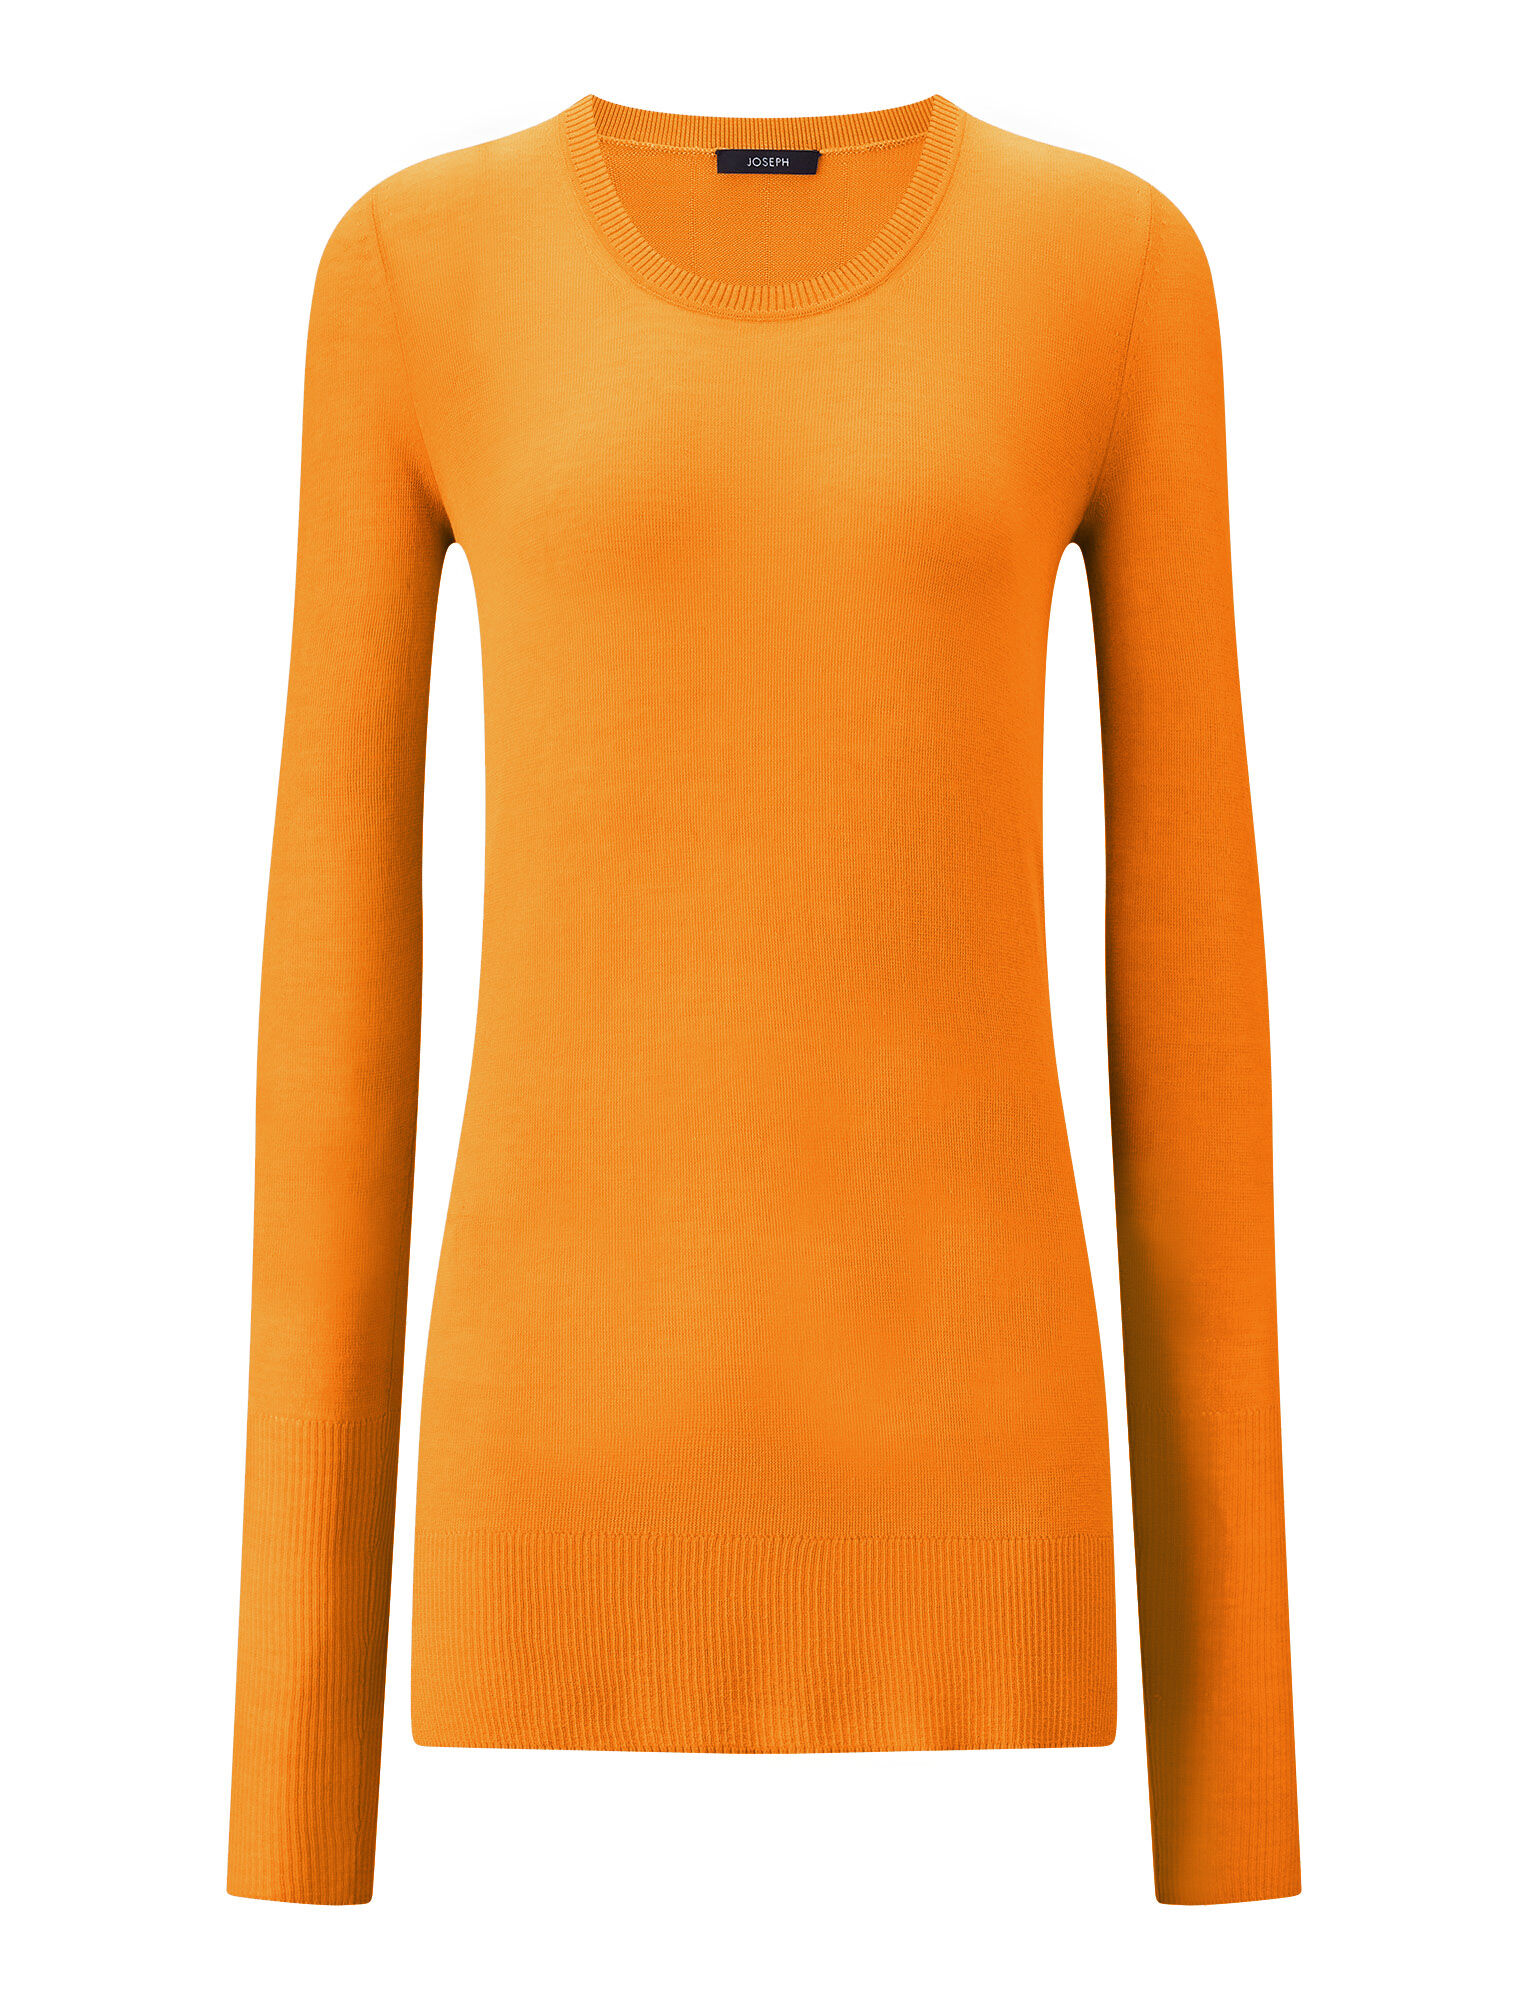 Joseph, Sheer Cotton Knit, in TANGERINE